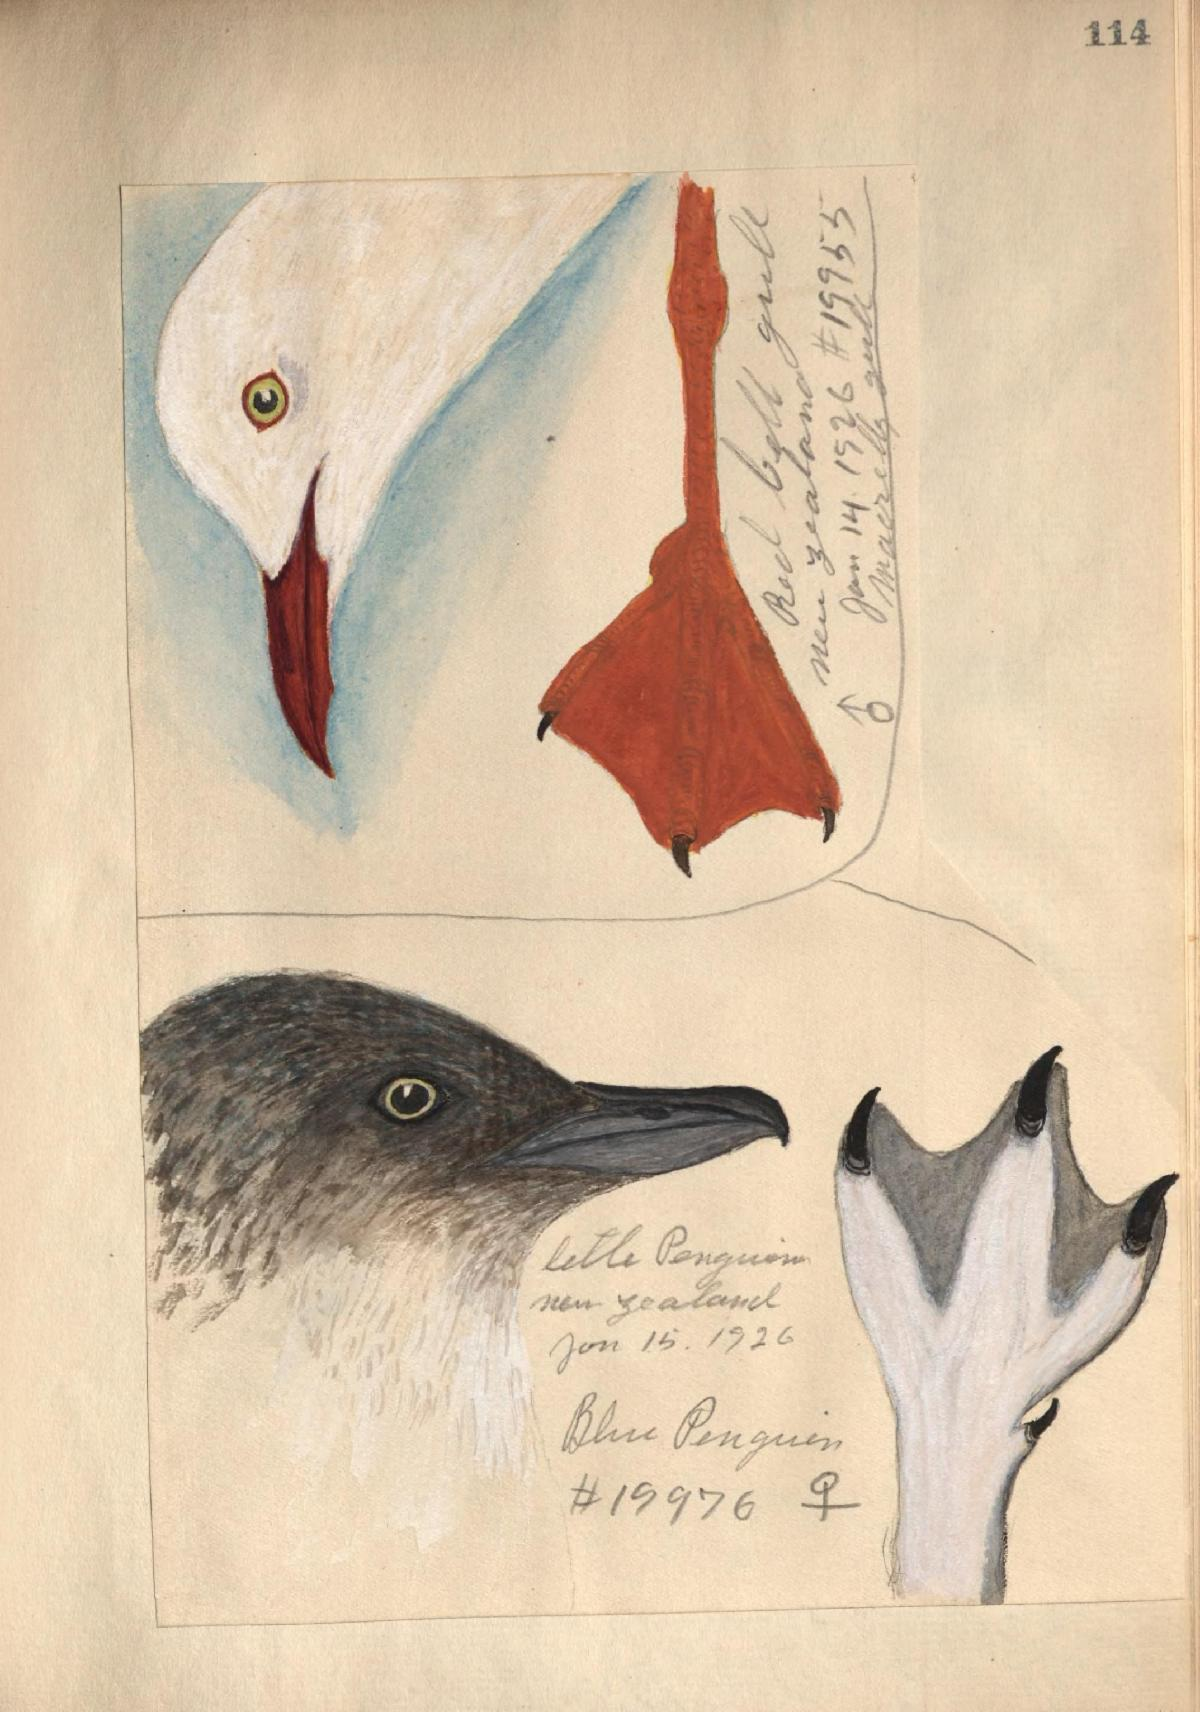 Illustration of bird heads and feet from José Correia's field book.